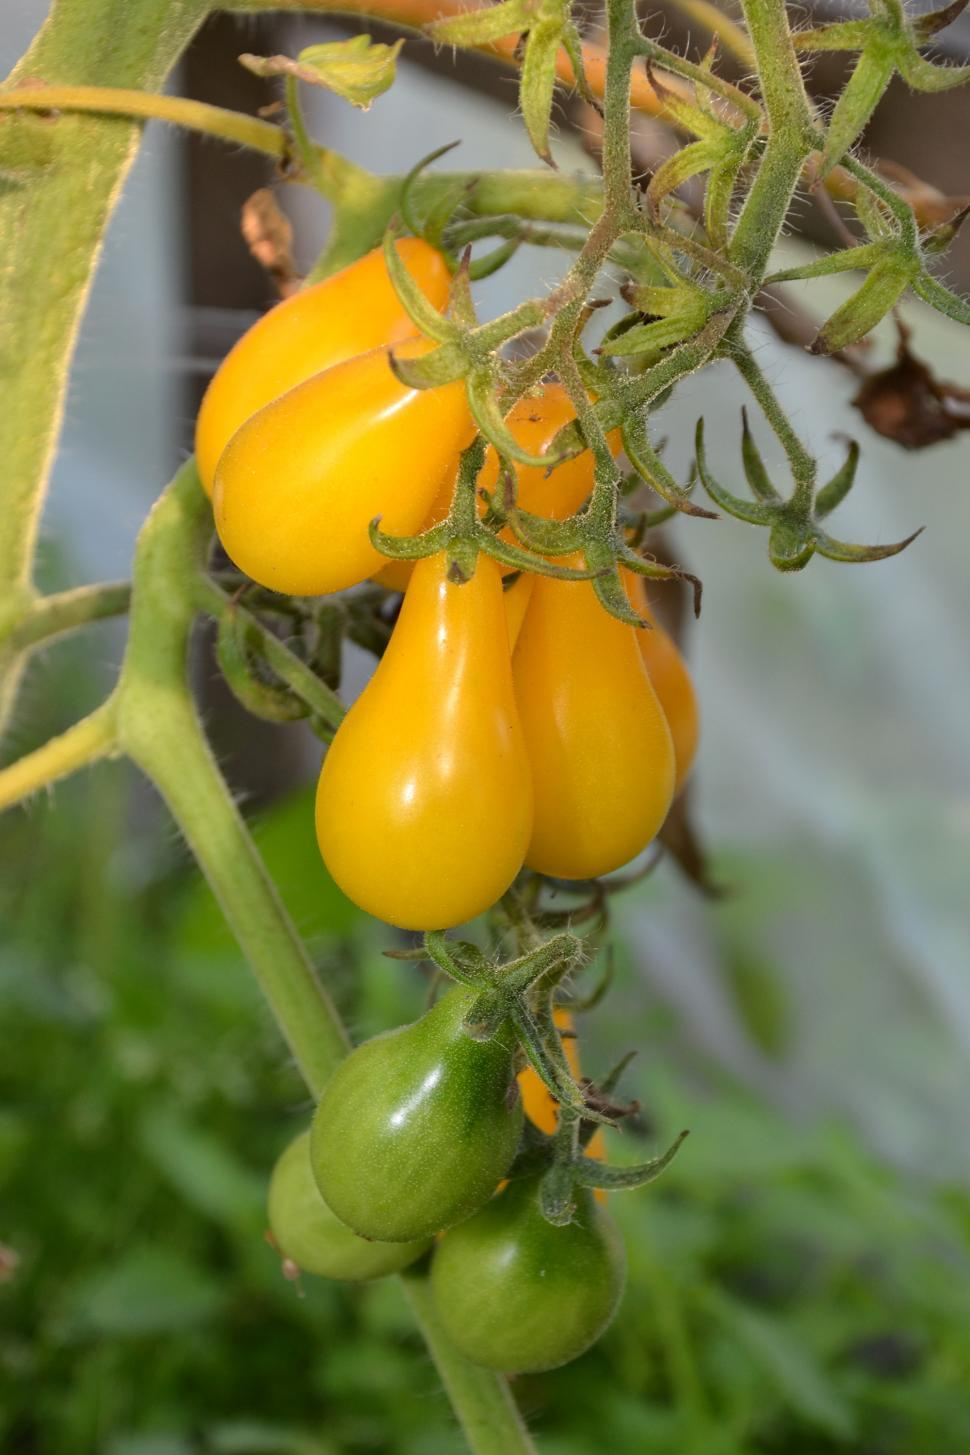 Download Free Stock HD Photo of Yellow plum tomatoes Online